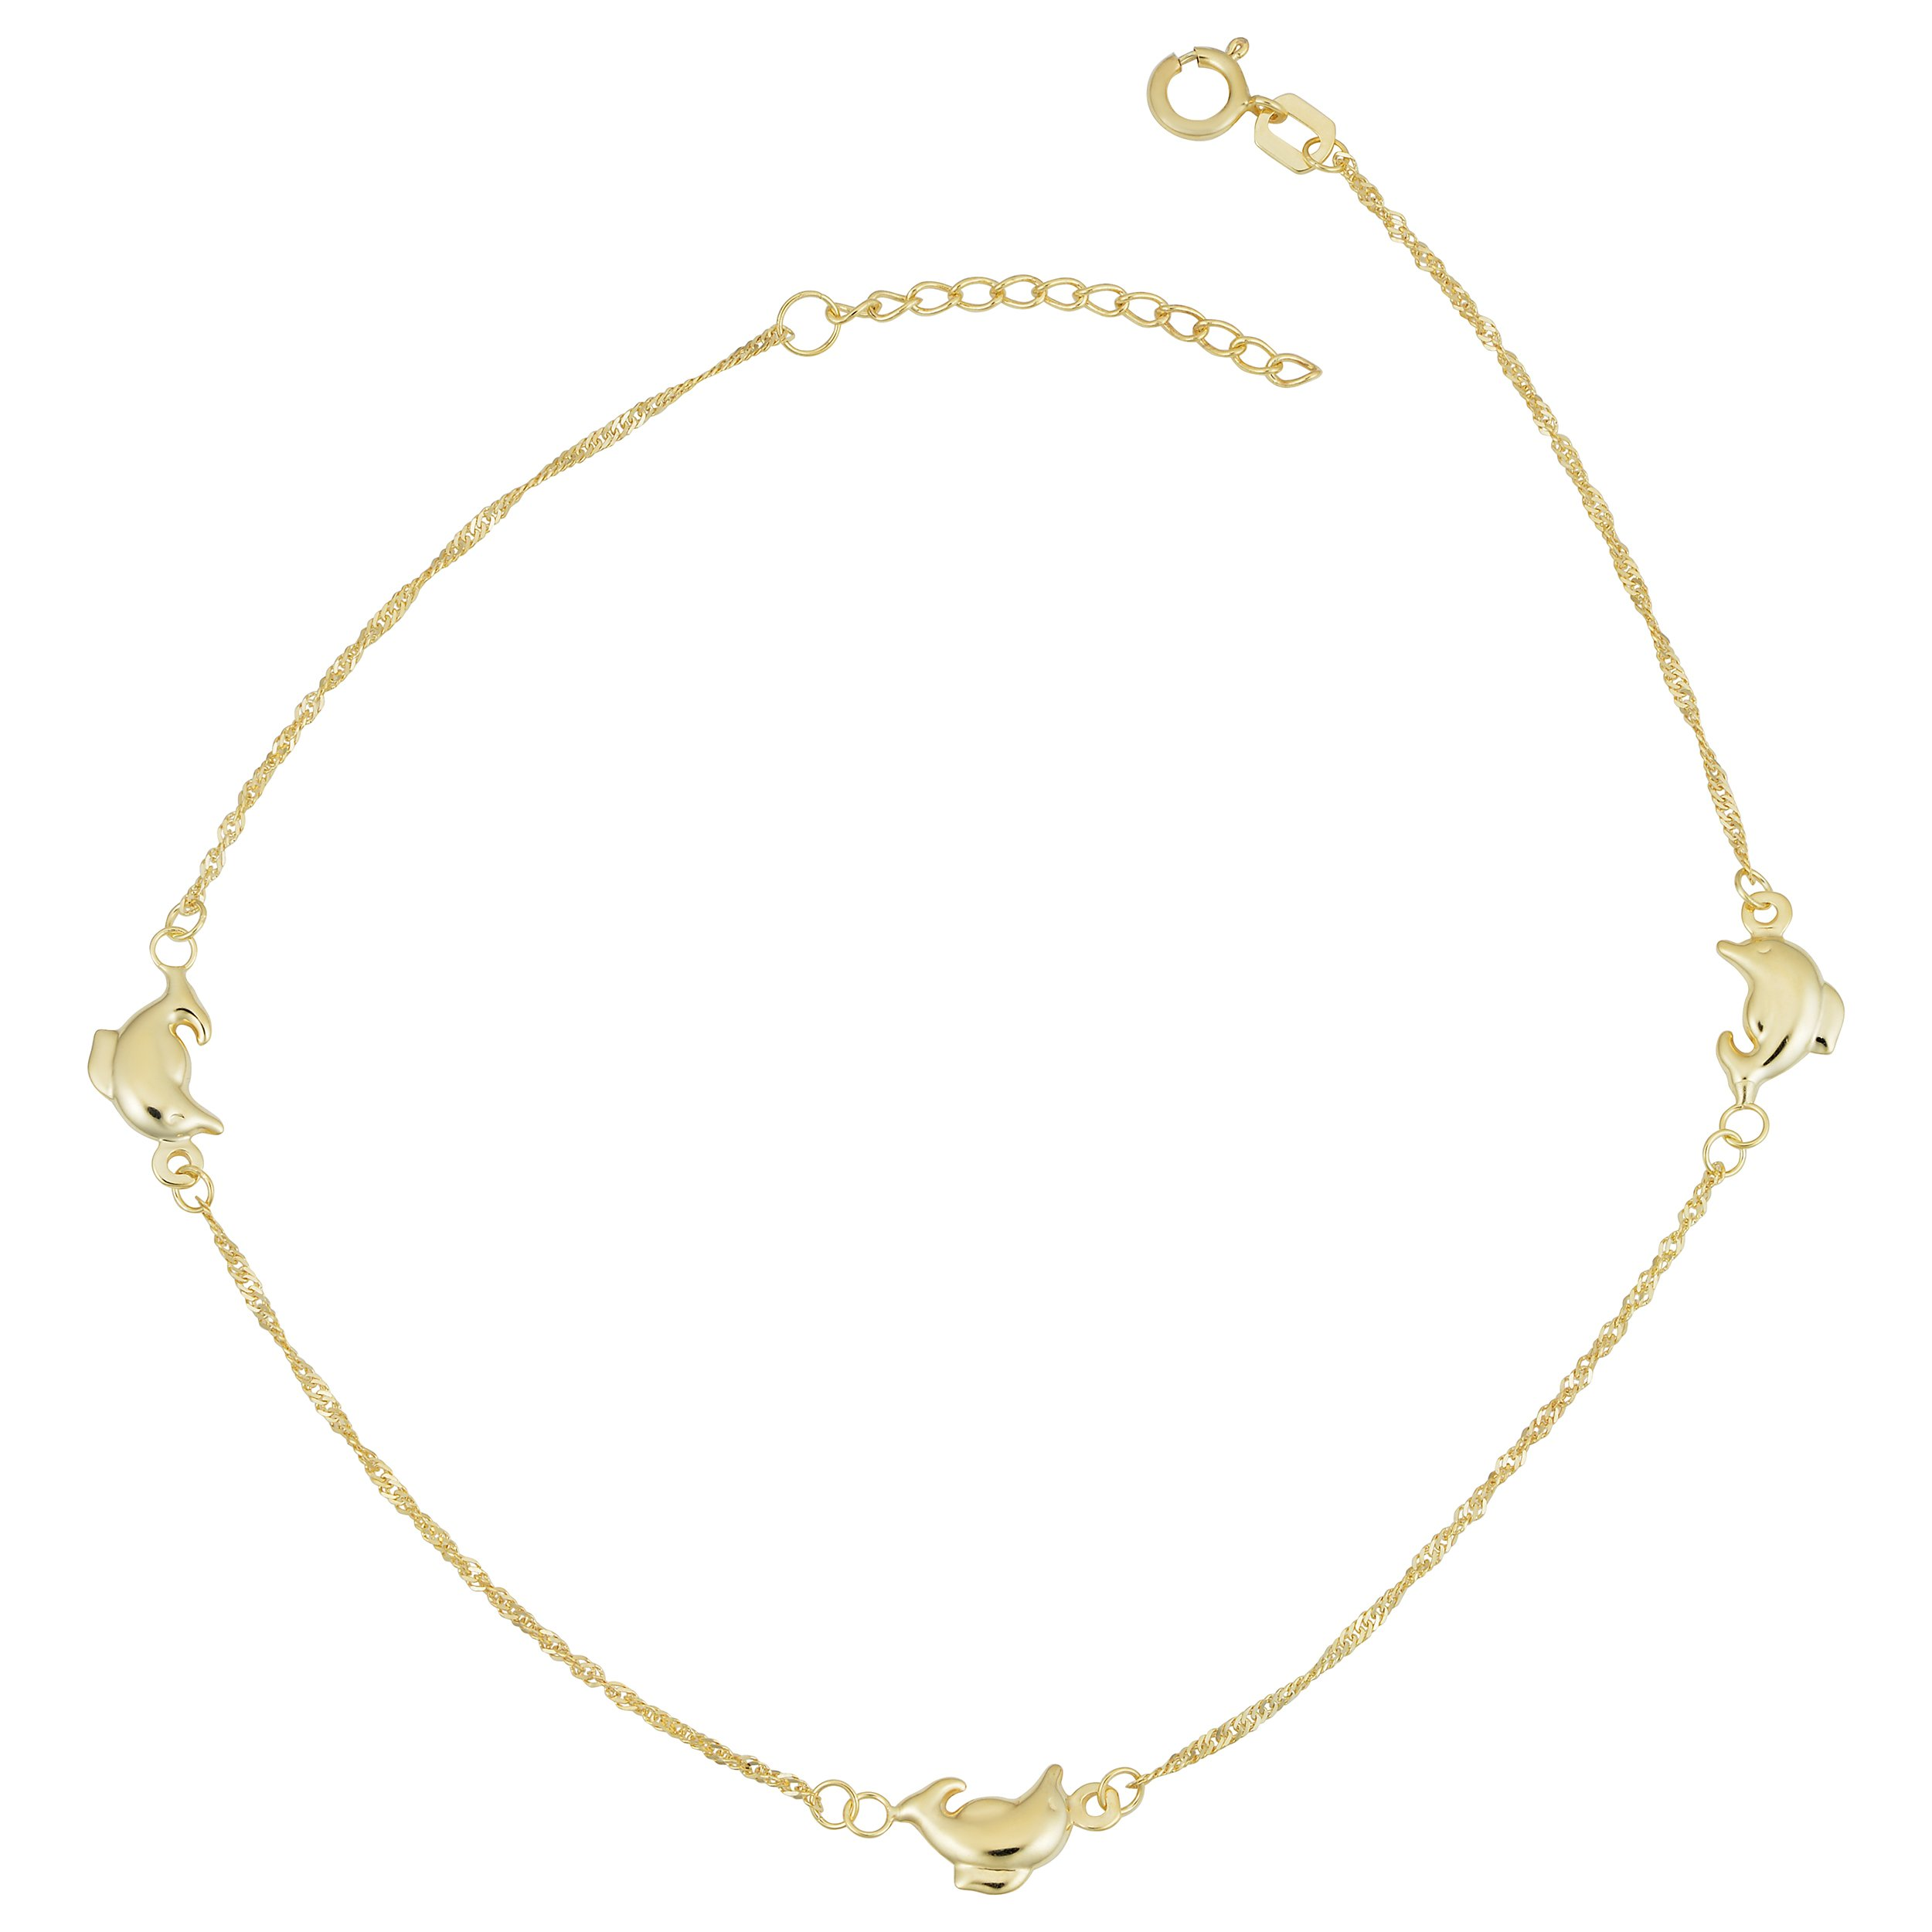 Kooljewelry 14k Yellow Gold Dolphin Station Anklet (adjusts from 9'' - 10'')